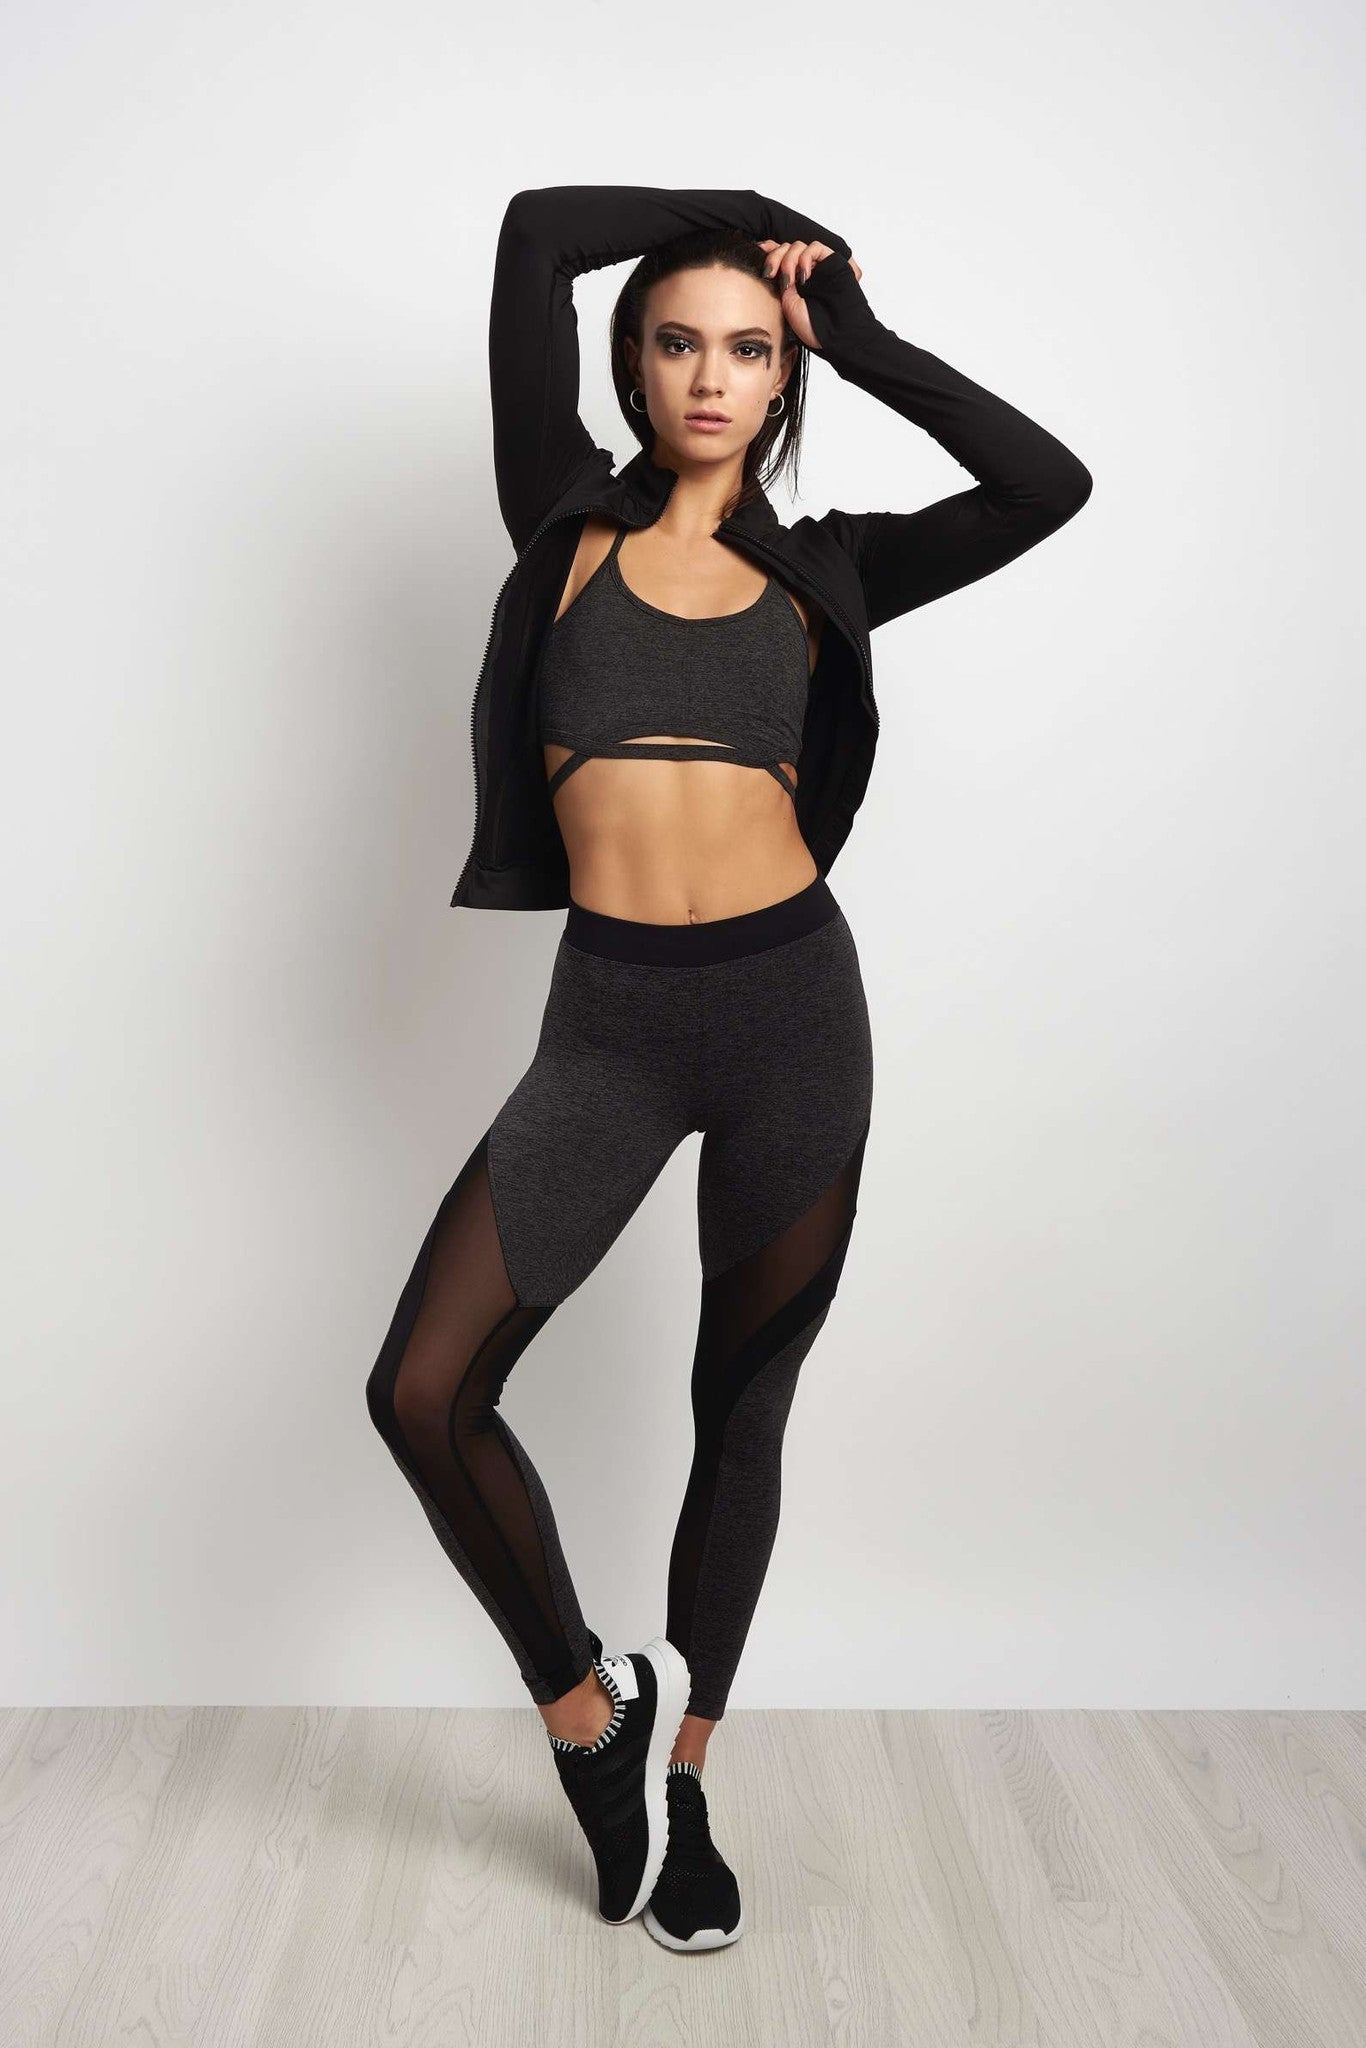 Koral Frame High Rise Legging - Heather / Black image 4 - The Sports Edit